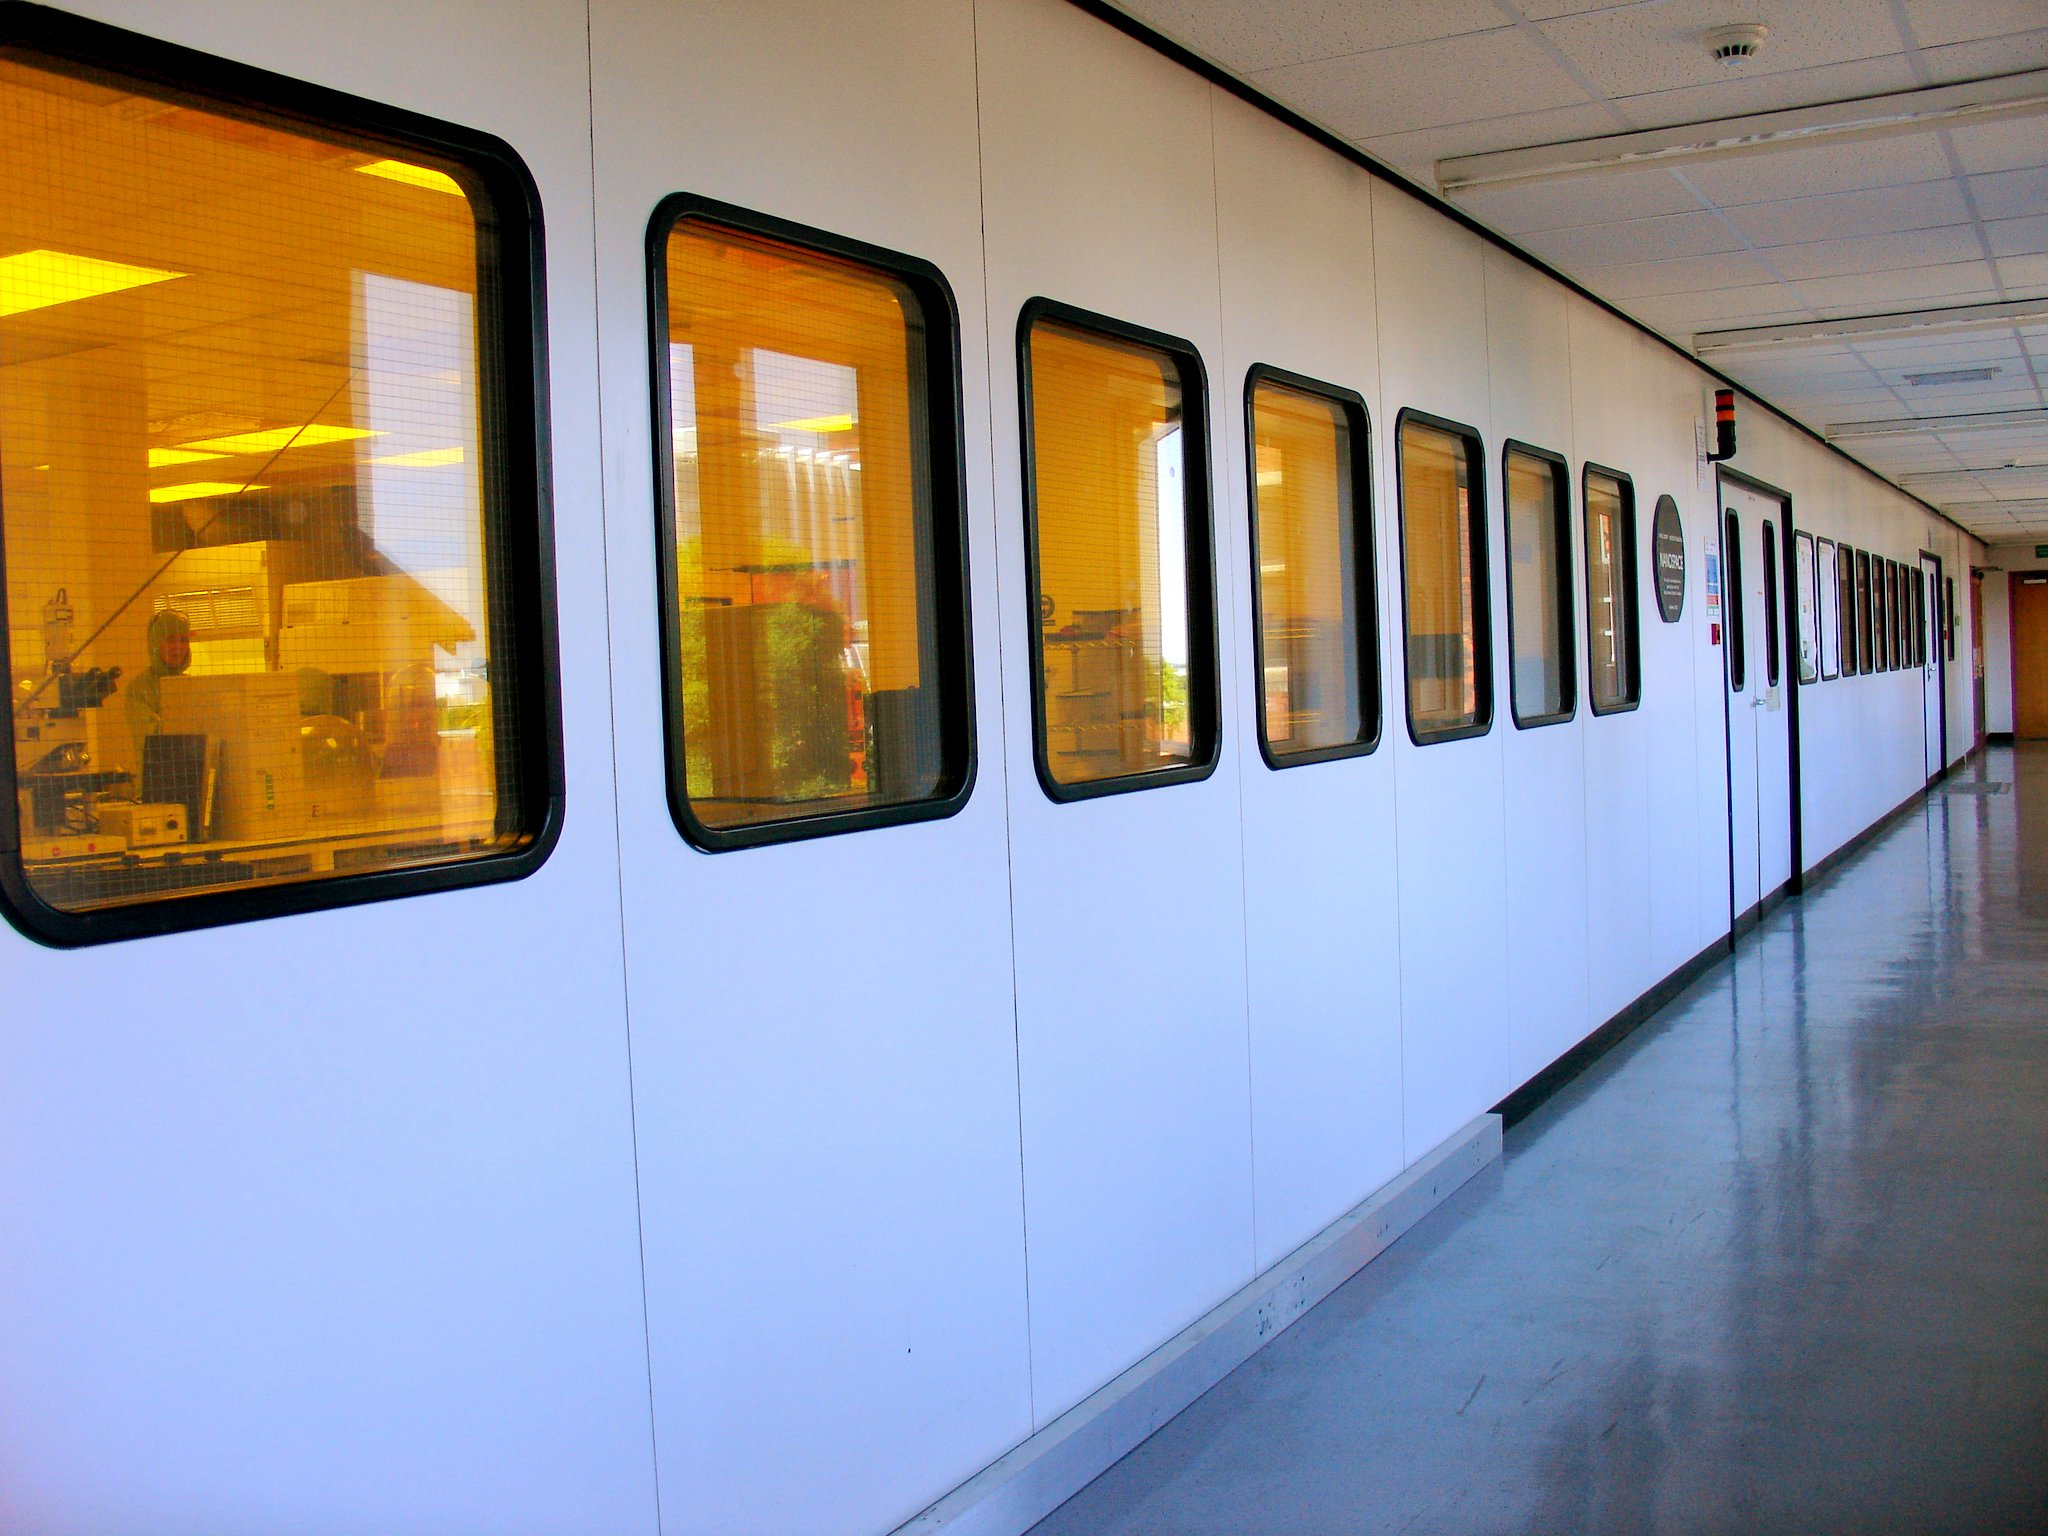 File:Cleanroom outside.jpg - Wikimedia Commons